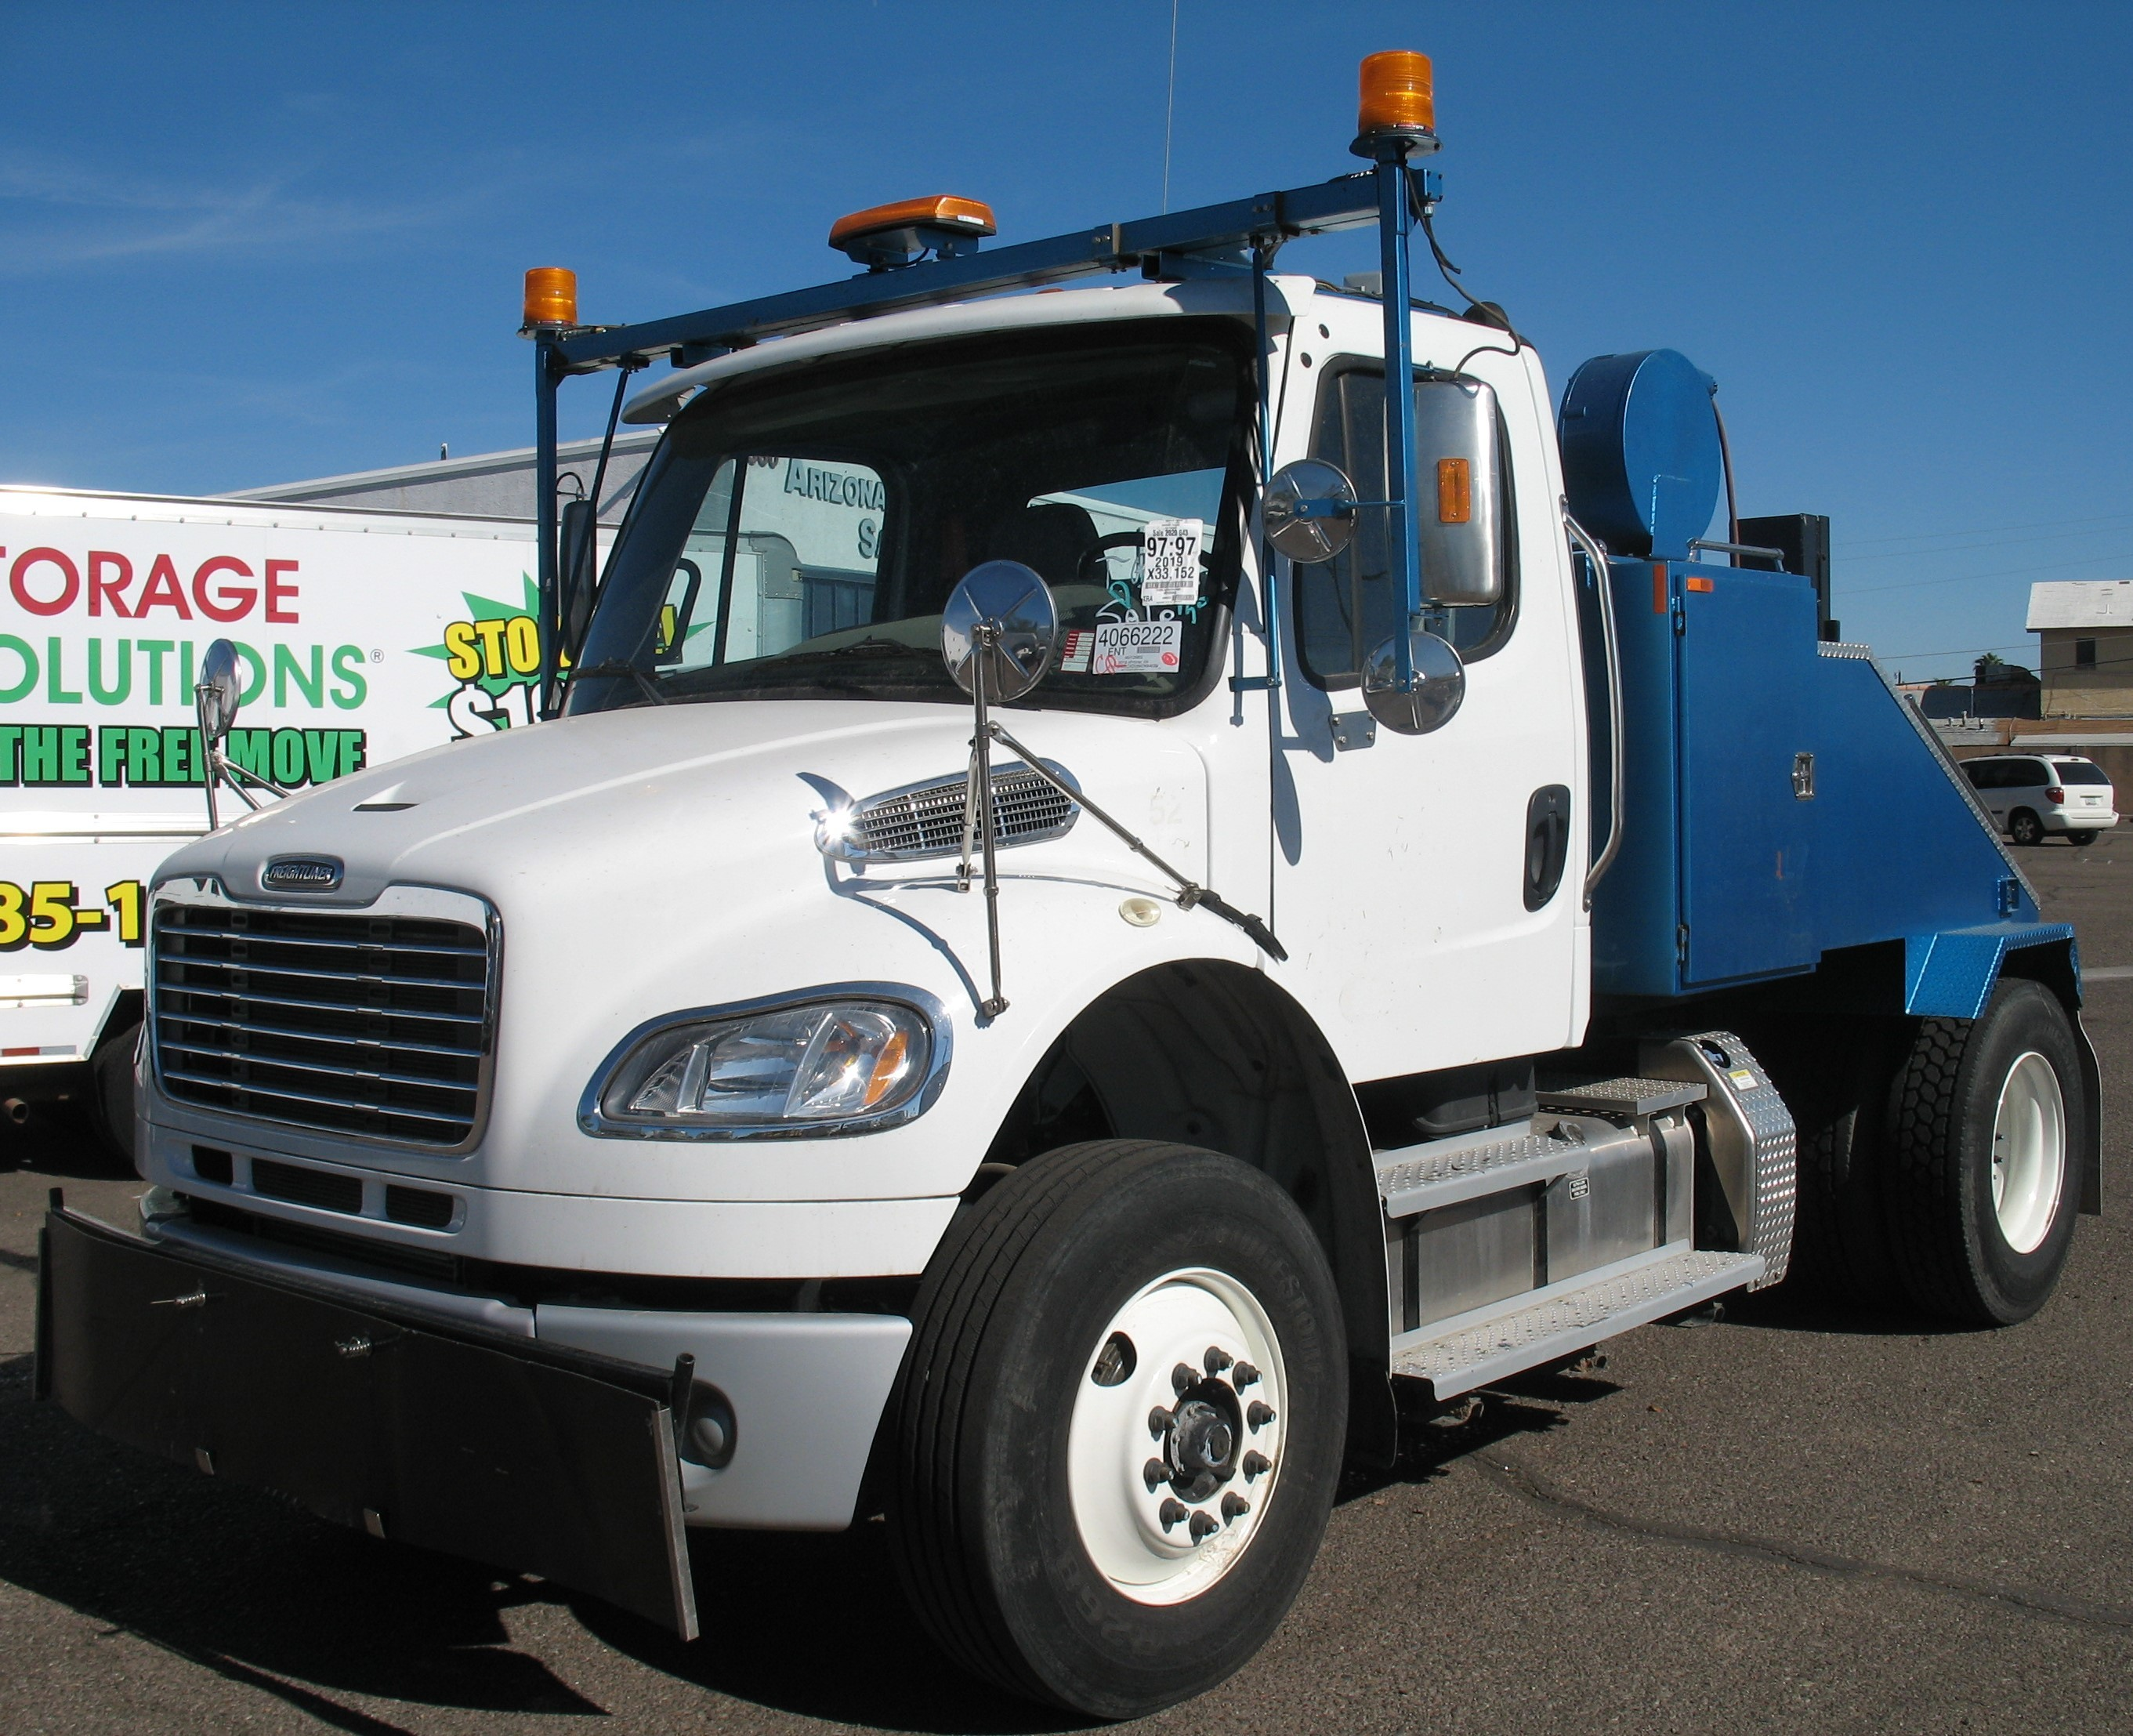 Used, 2019, Freightliner, M2 BUISNESS CLASS, Toter Trucks